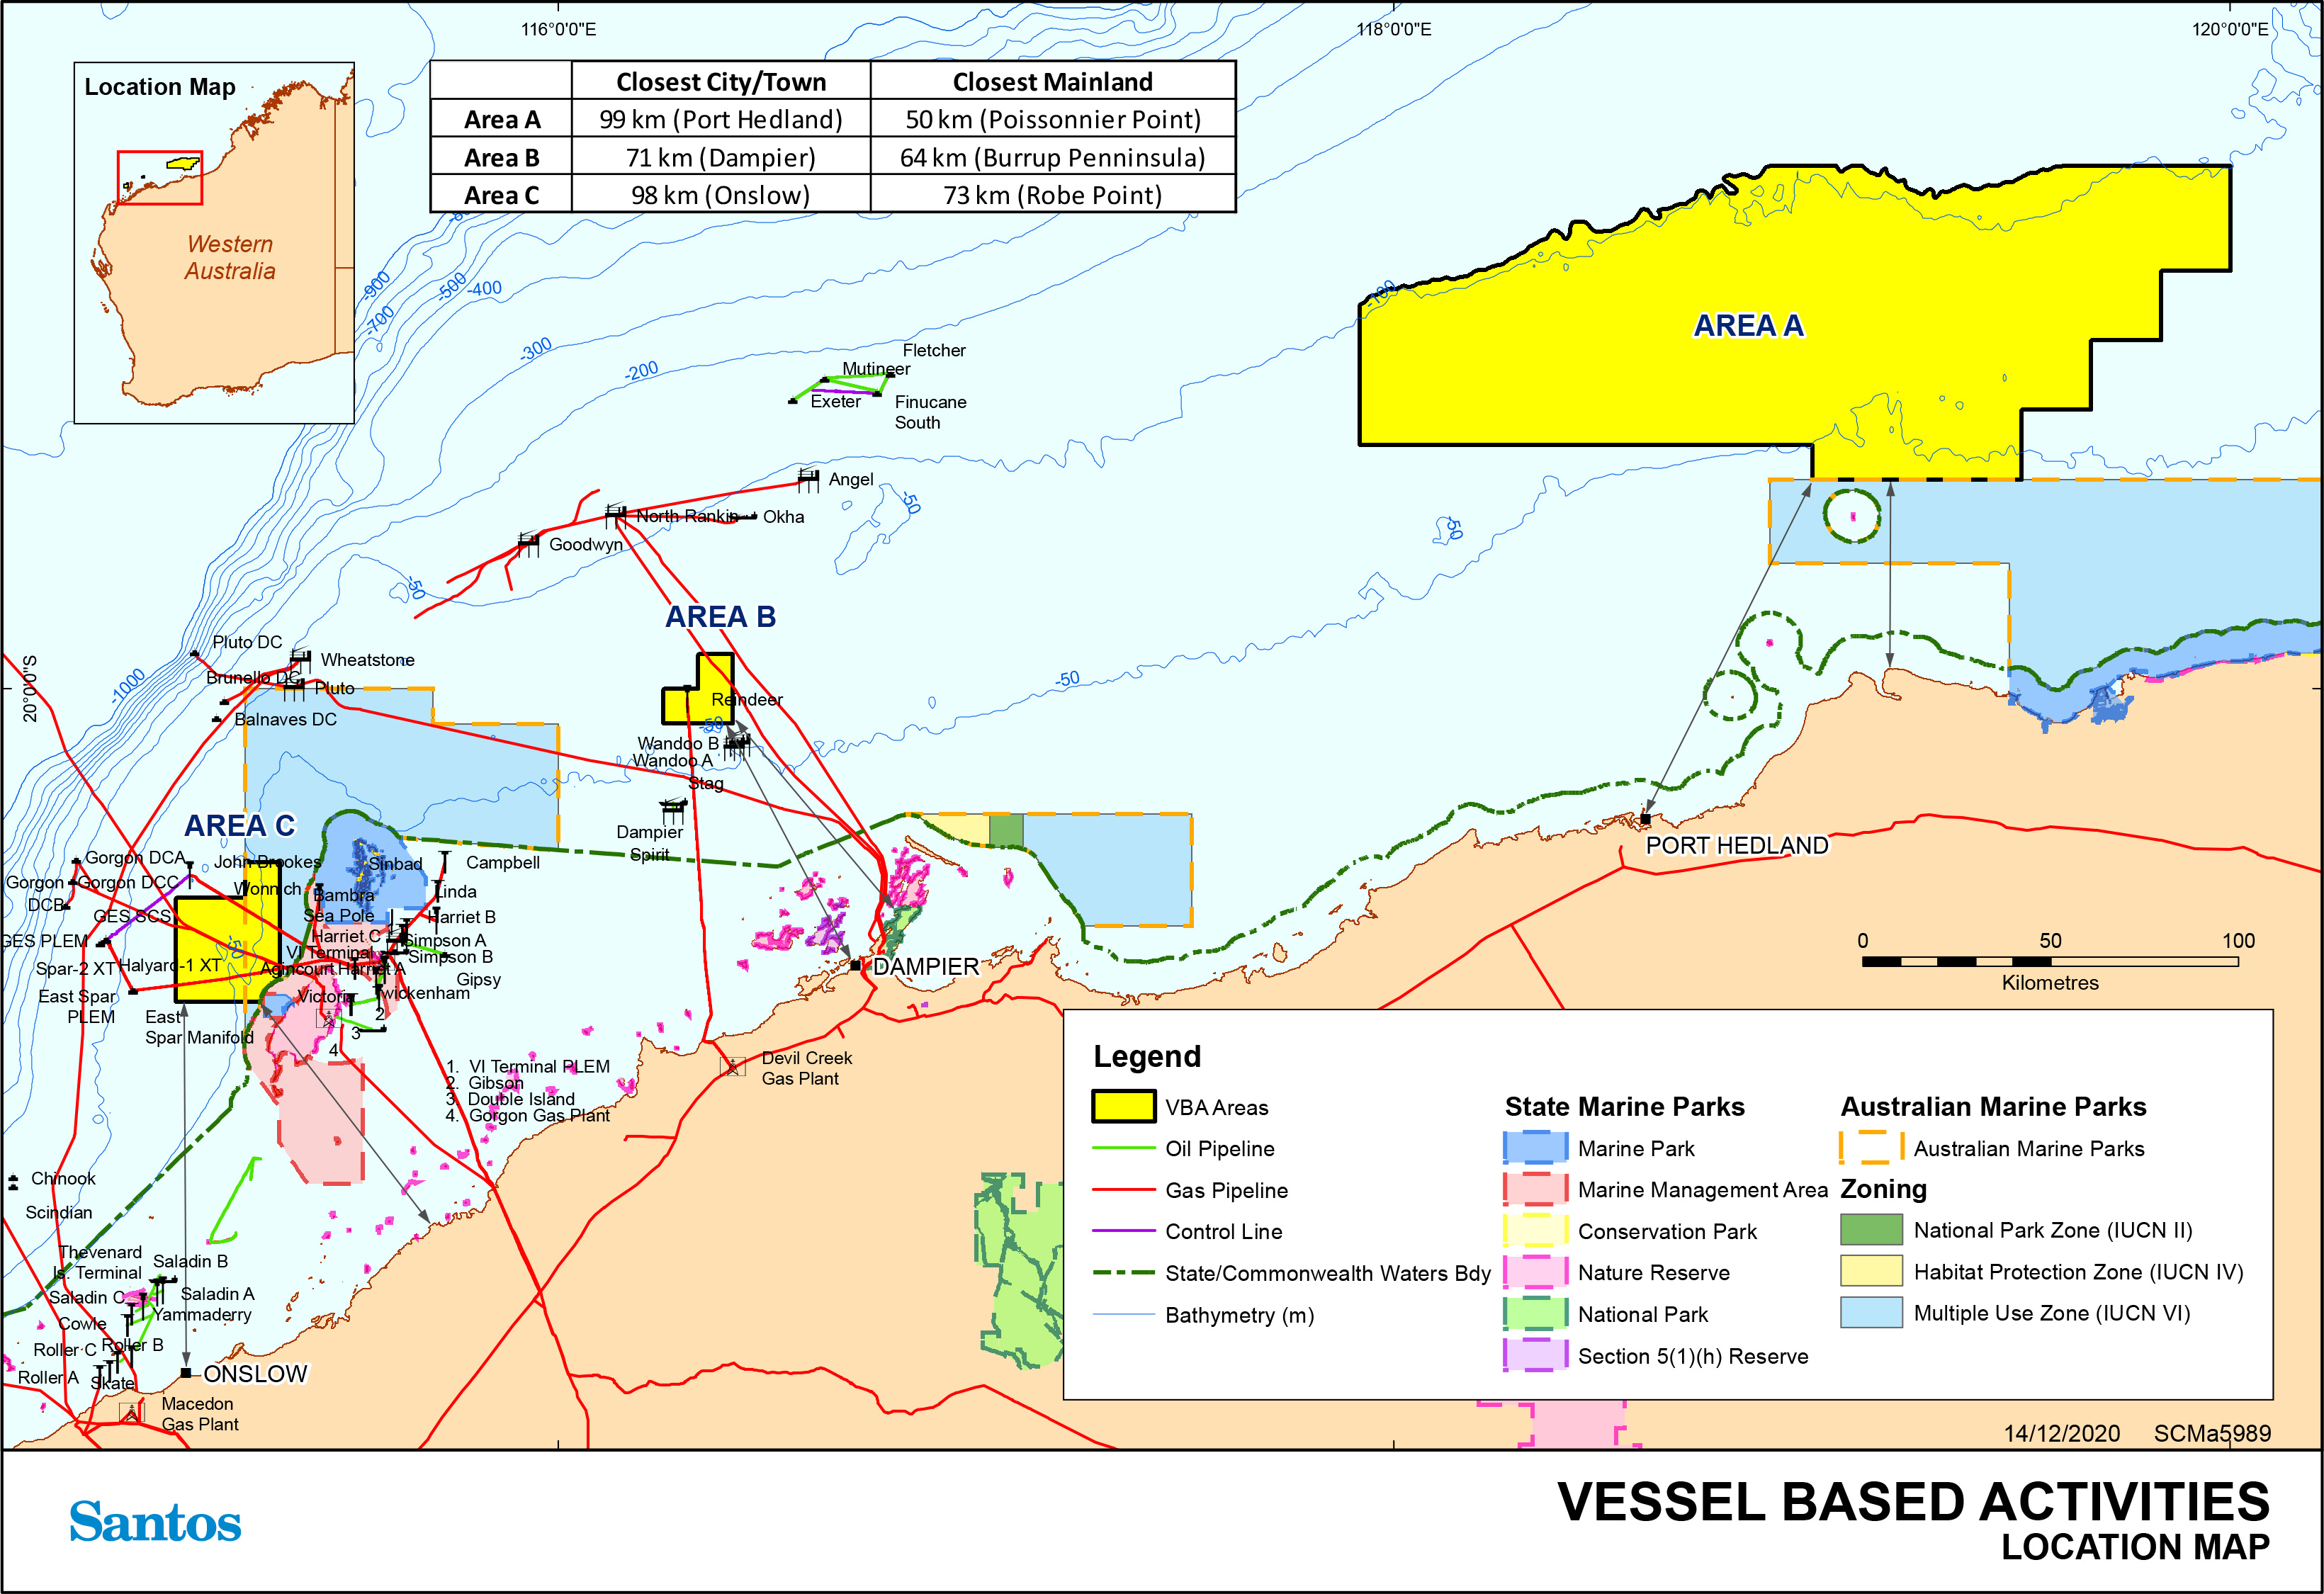 Location map - Activity: Commonwealth Exploration Vessel Based Activity (refer to description)